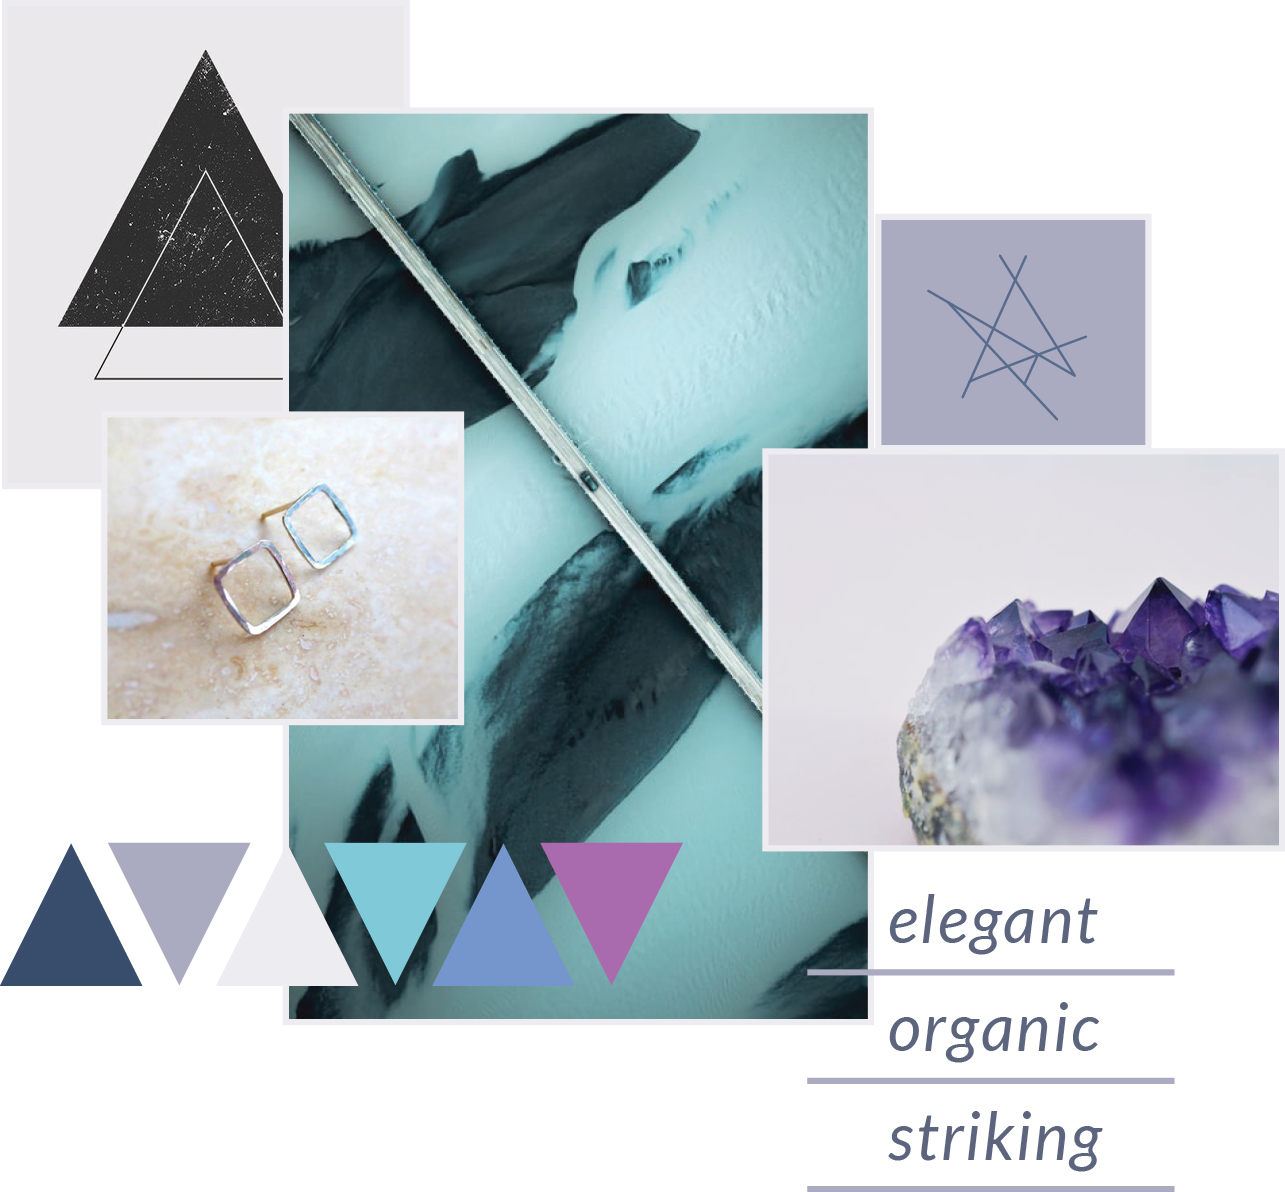 alison titus jewelry branding guidelines for imagery, texture, and color